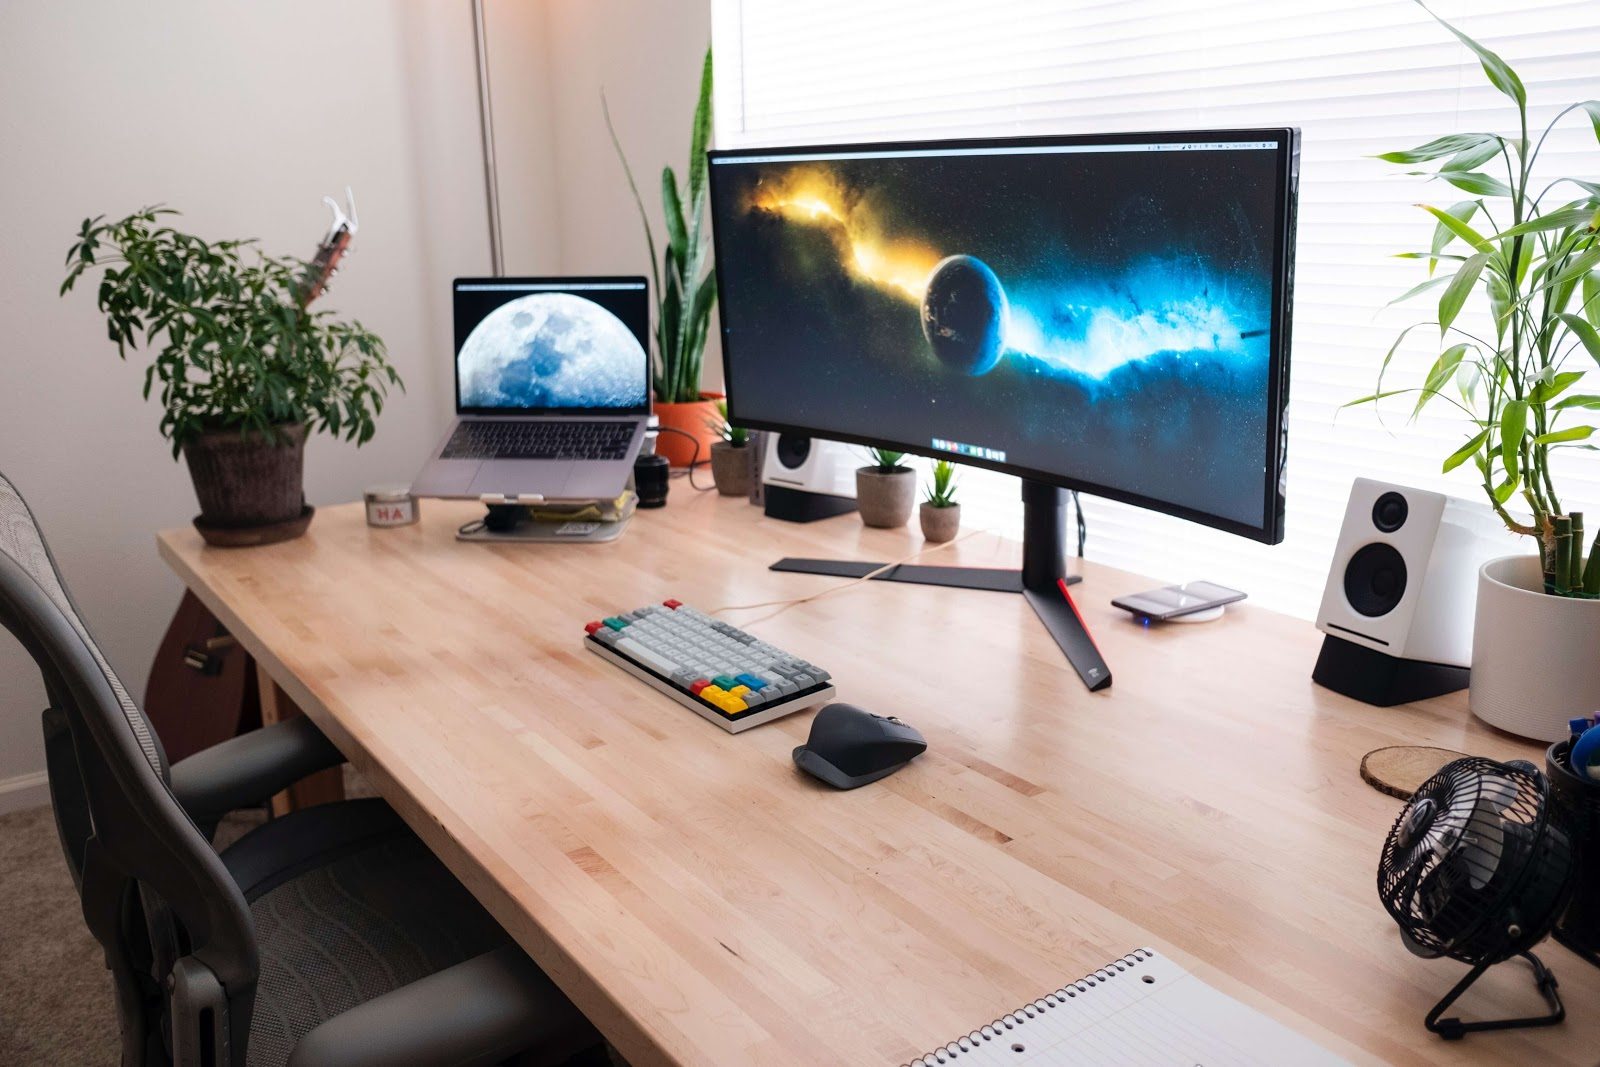 Large monitor with keyboard and laptop. Looks like a home office setup.